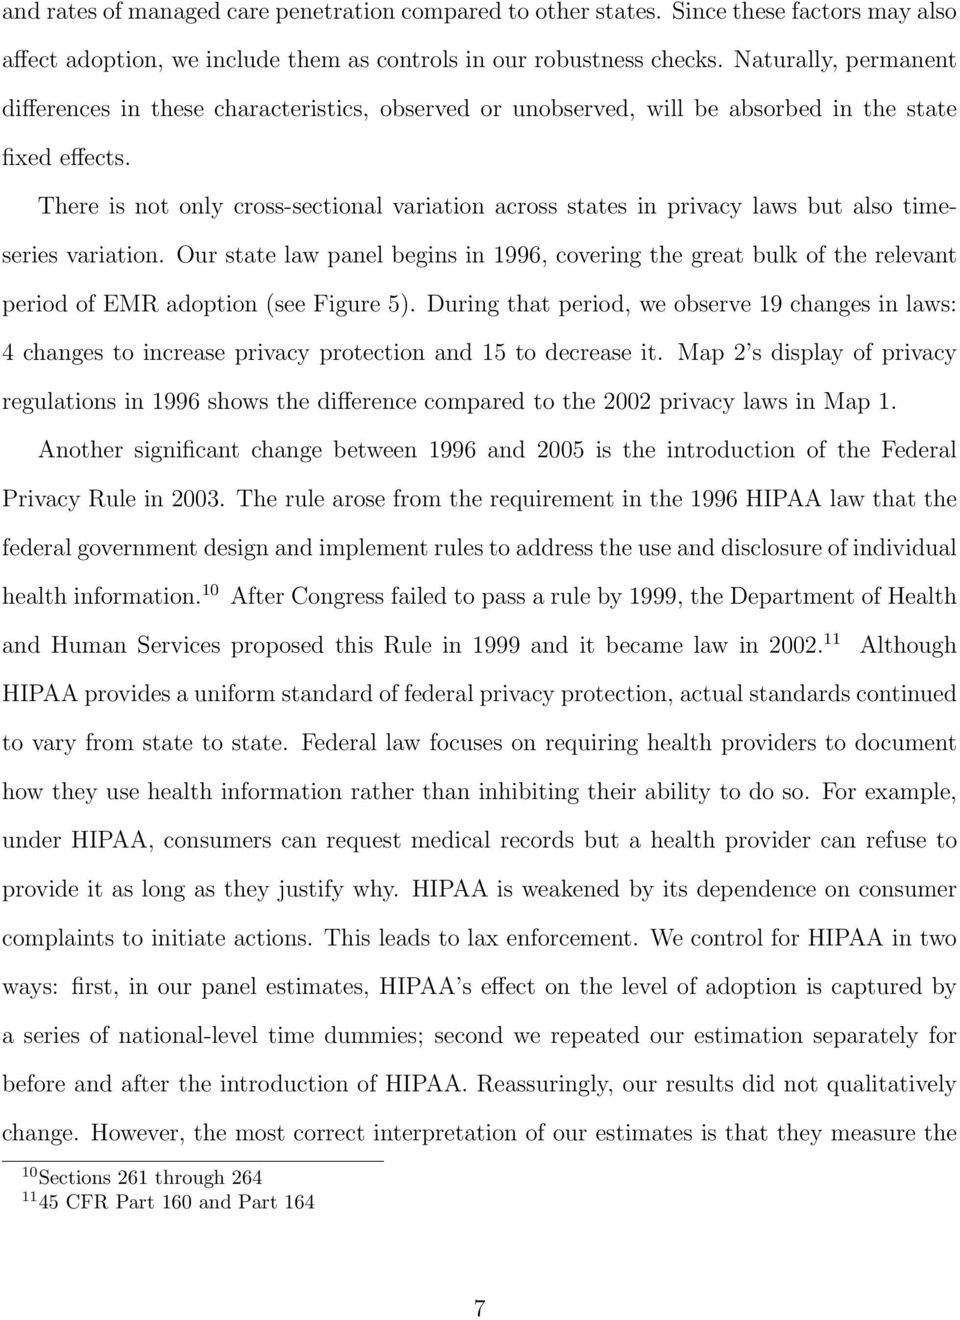 There is not only cross-sectional variation across states in privacy laws but also timeseries variation.